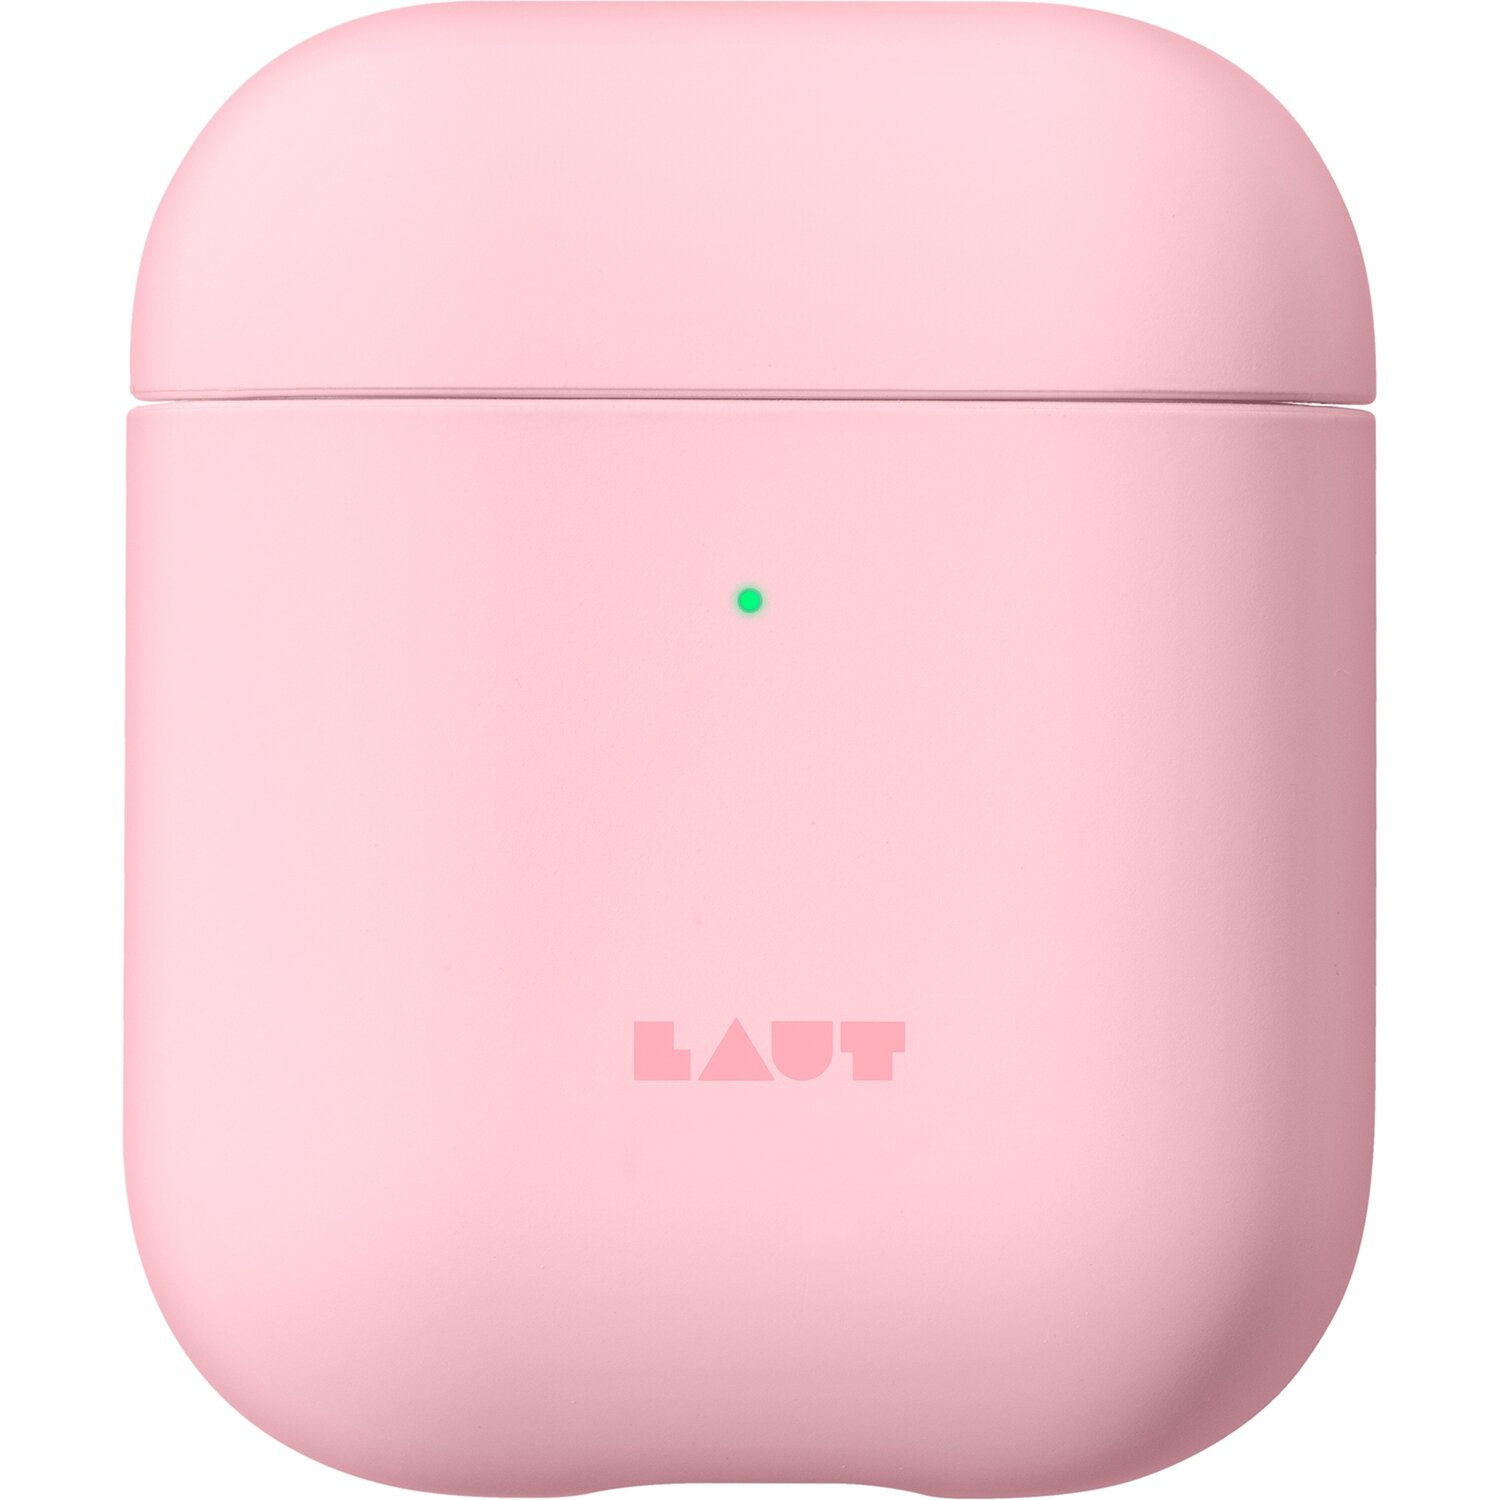 Laut Huex Pastels for AirPods candy